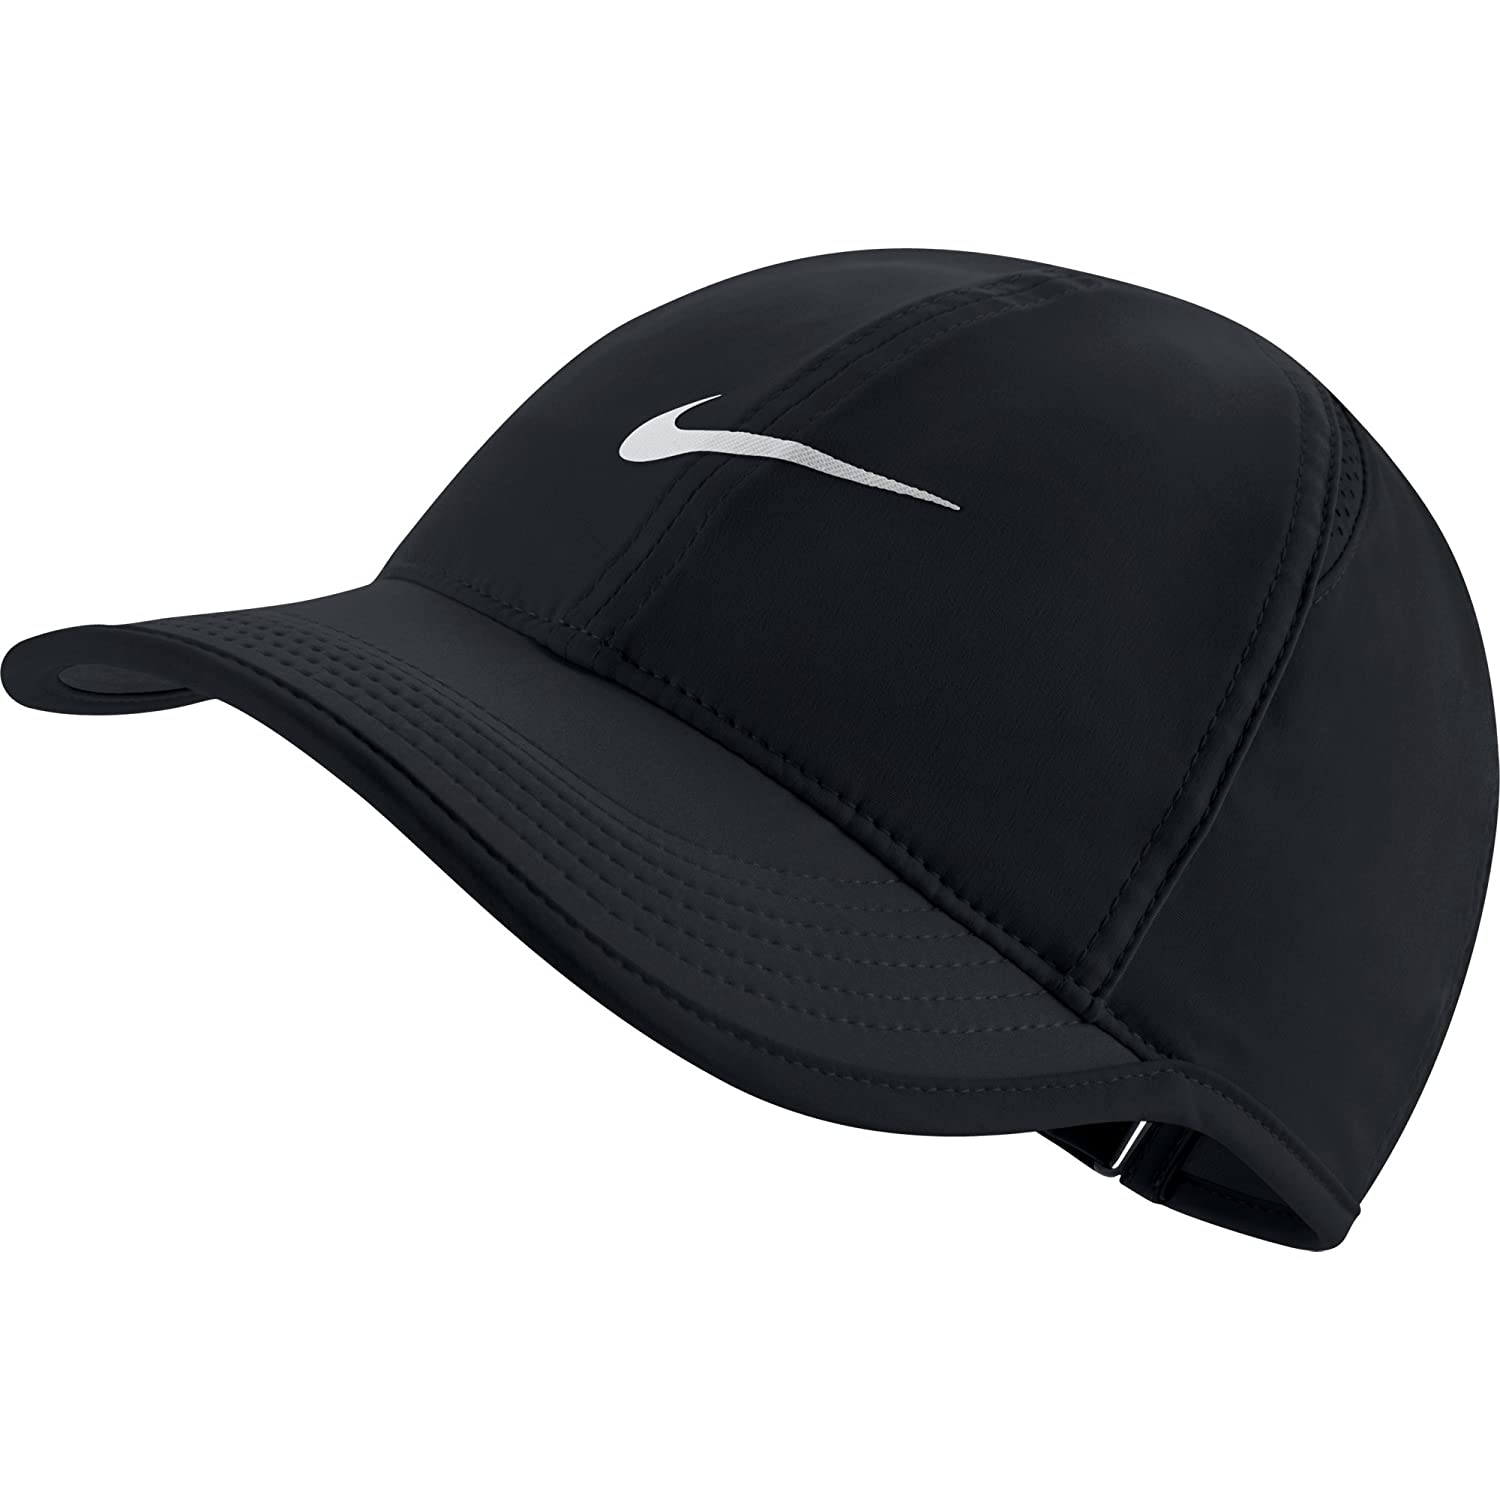 a575d7af Amazon.com: NIKE Women's AeroBill Featherlight Tennis Cap,  Black/Black/White, One Size: Clothing